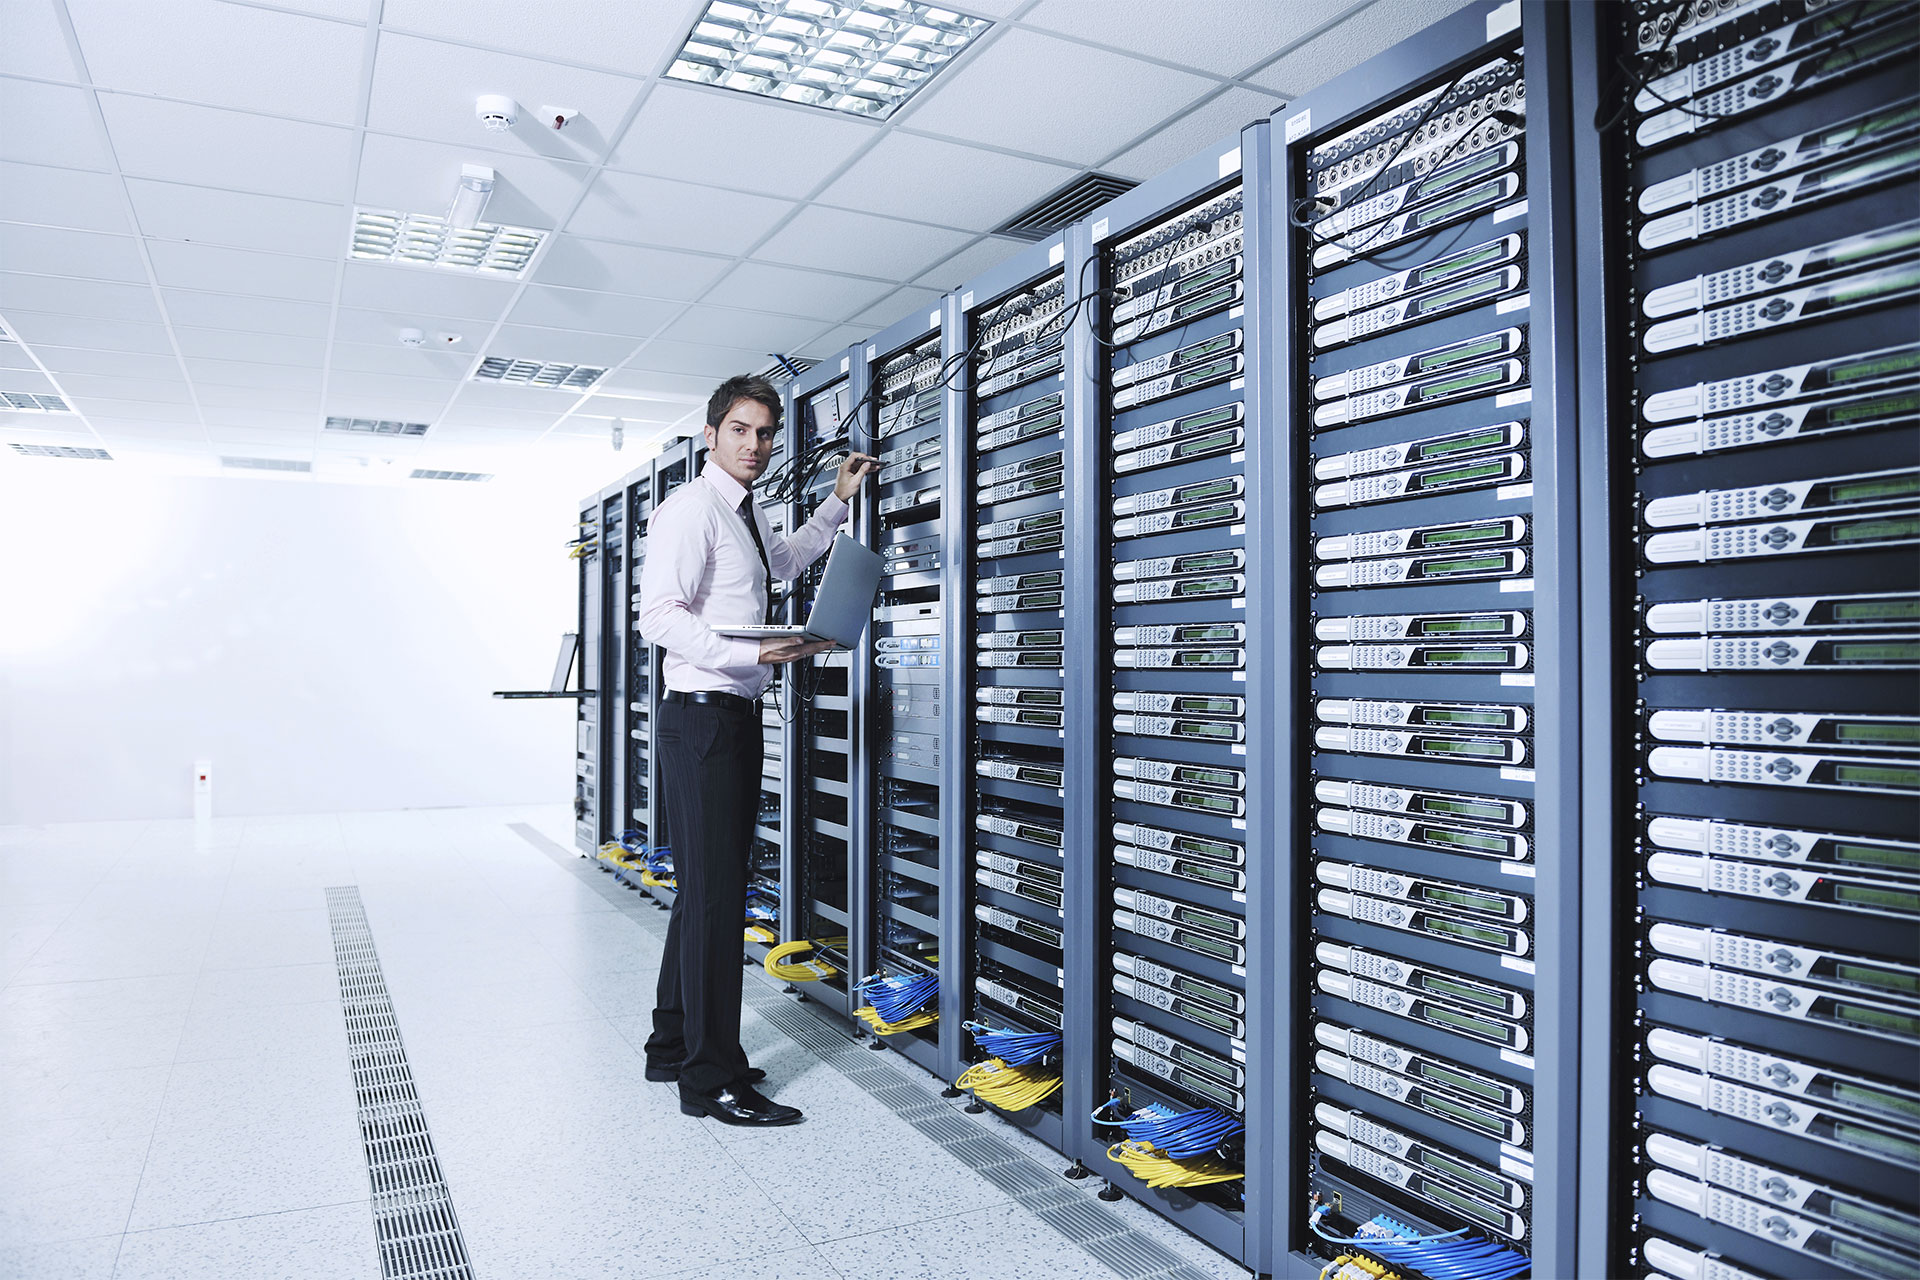 professional working in server room